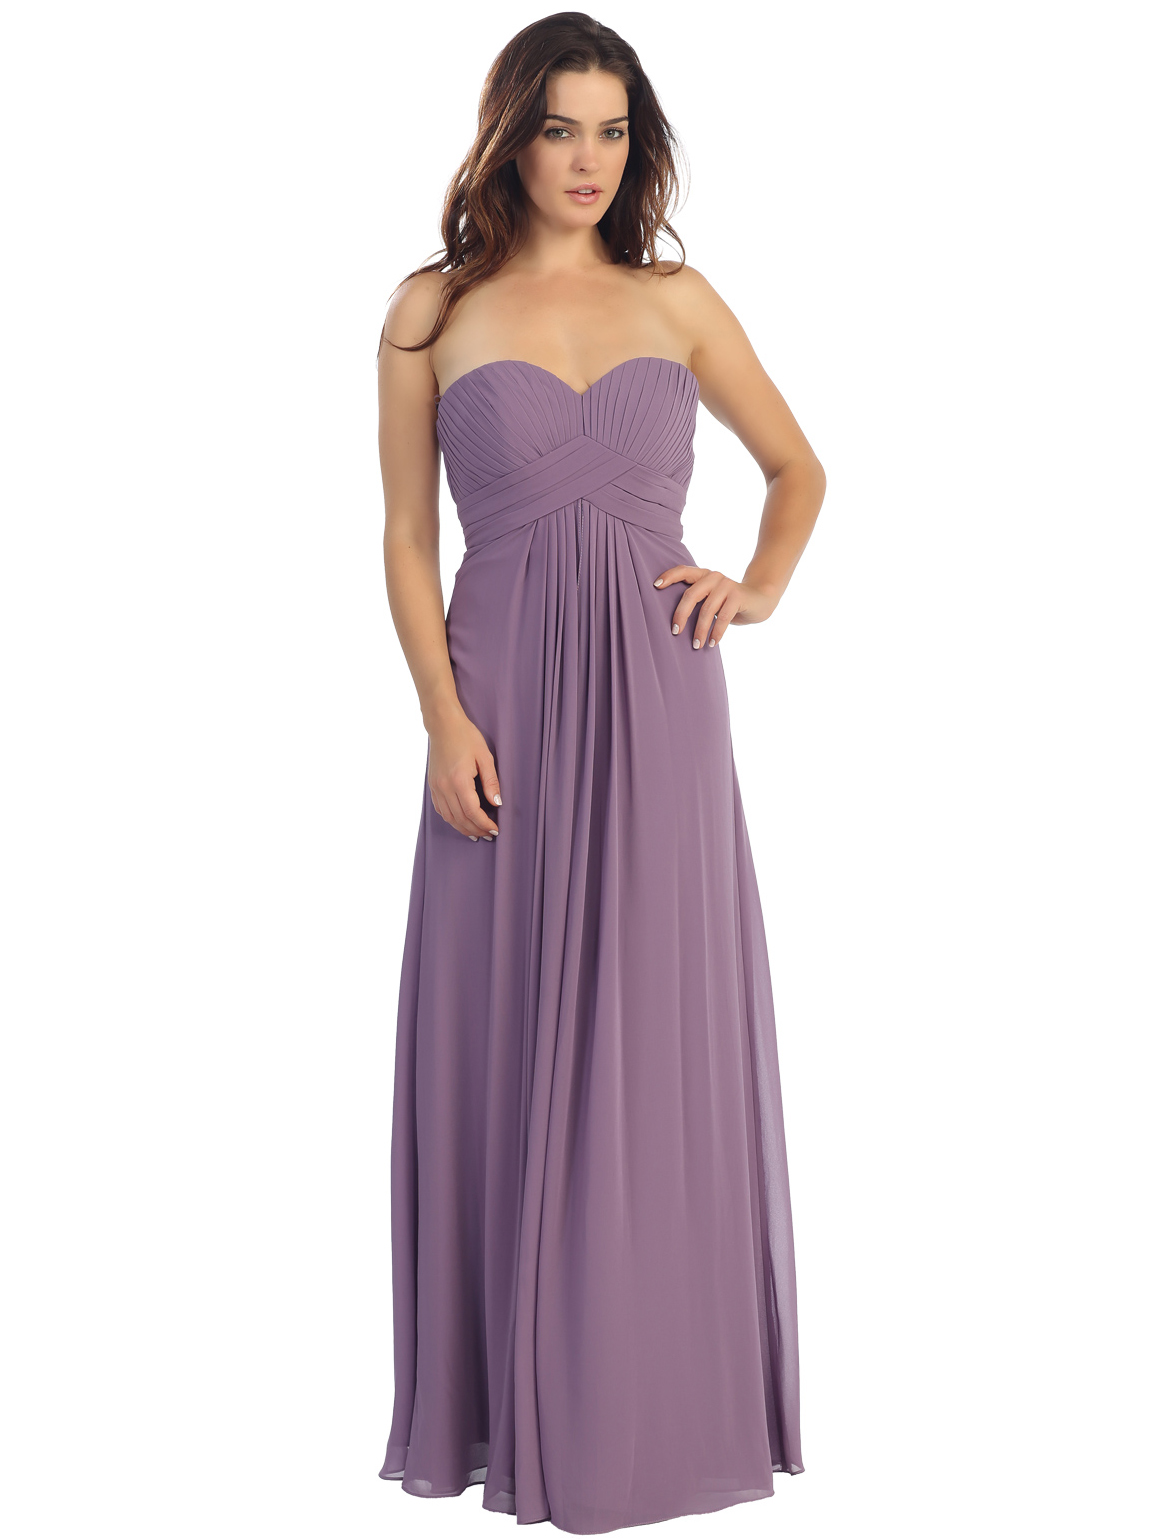 Bridesmaid Dresses In Victorian Lilac - Wedding Dresses In Jax